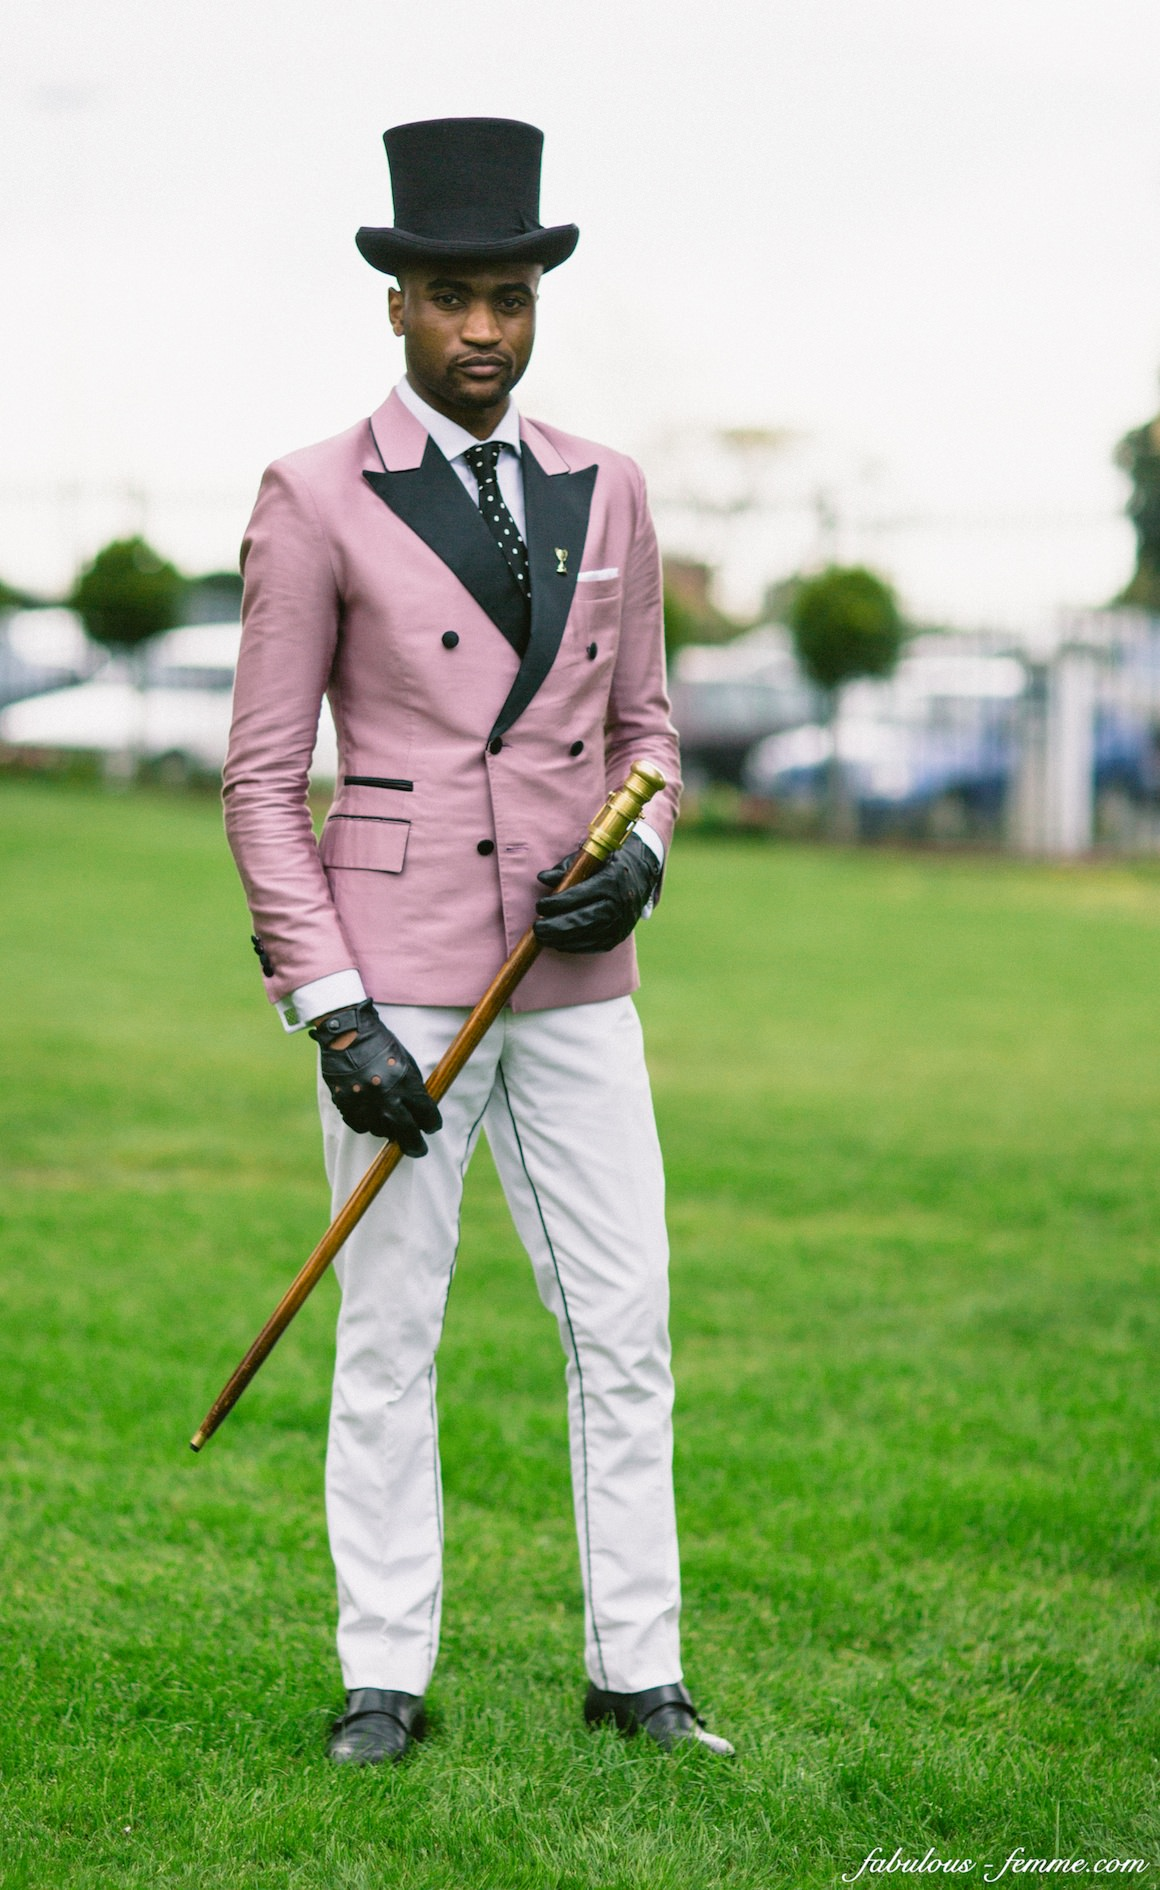 Caulfield Cup 2013 Fashion on the Field - Stylish Gentlemen